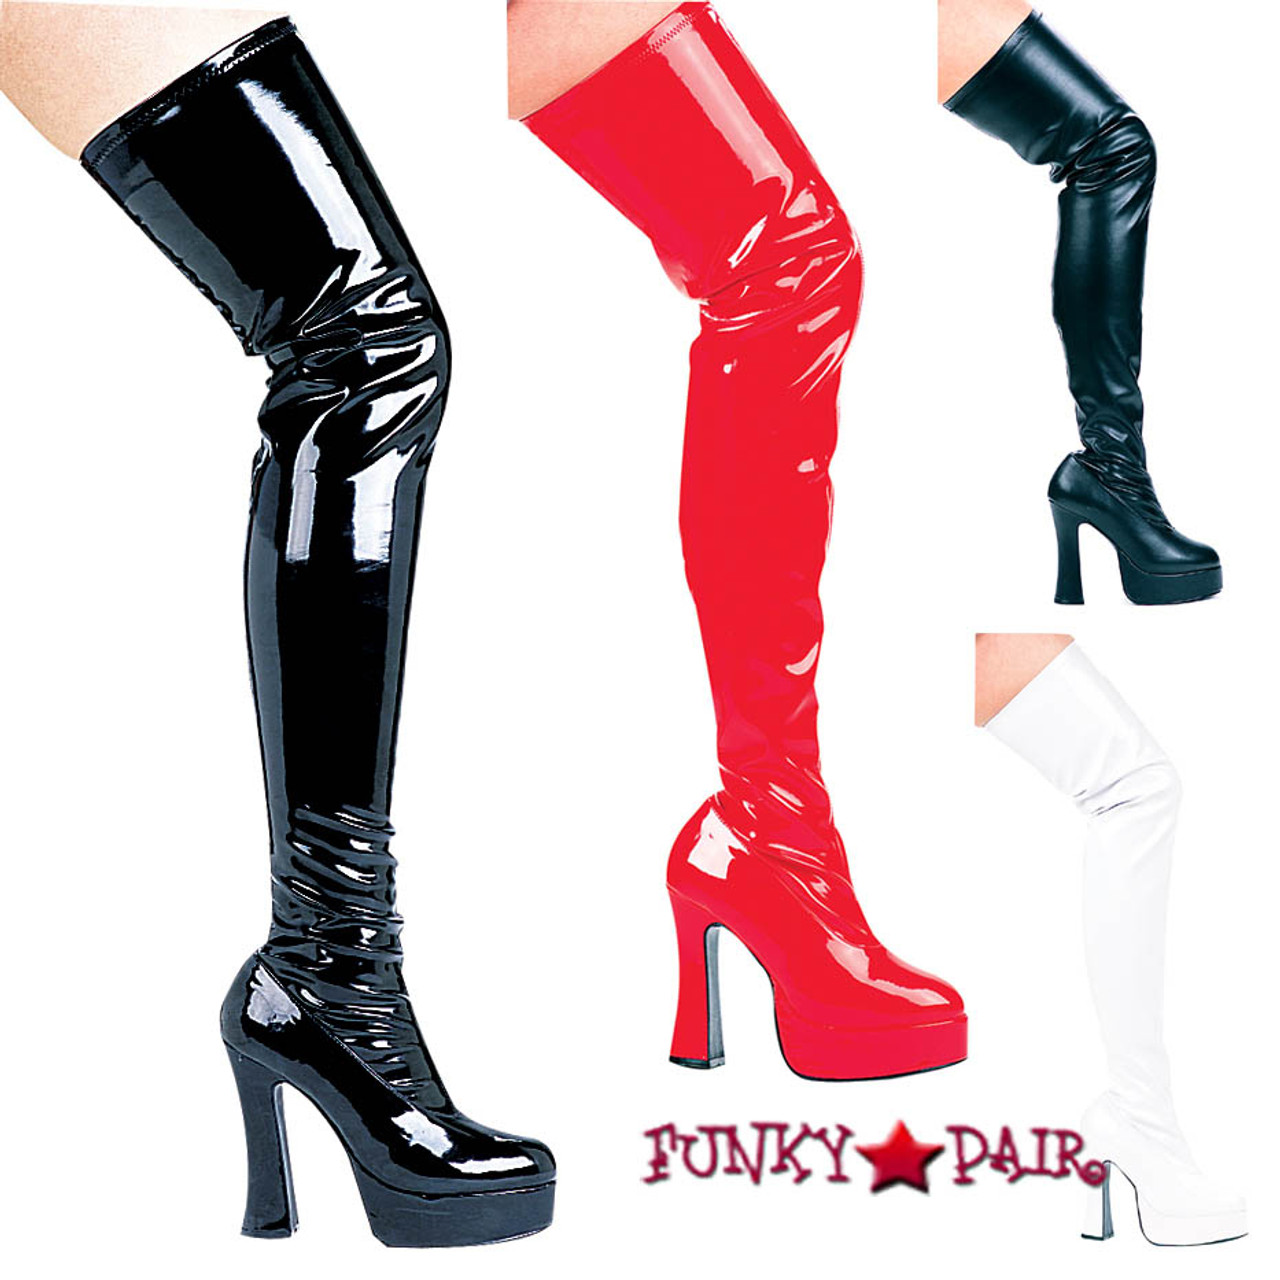 Thrill 5 Inch Chunky Heel Thigh High Boots Sz 6 16 Available In